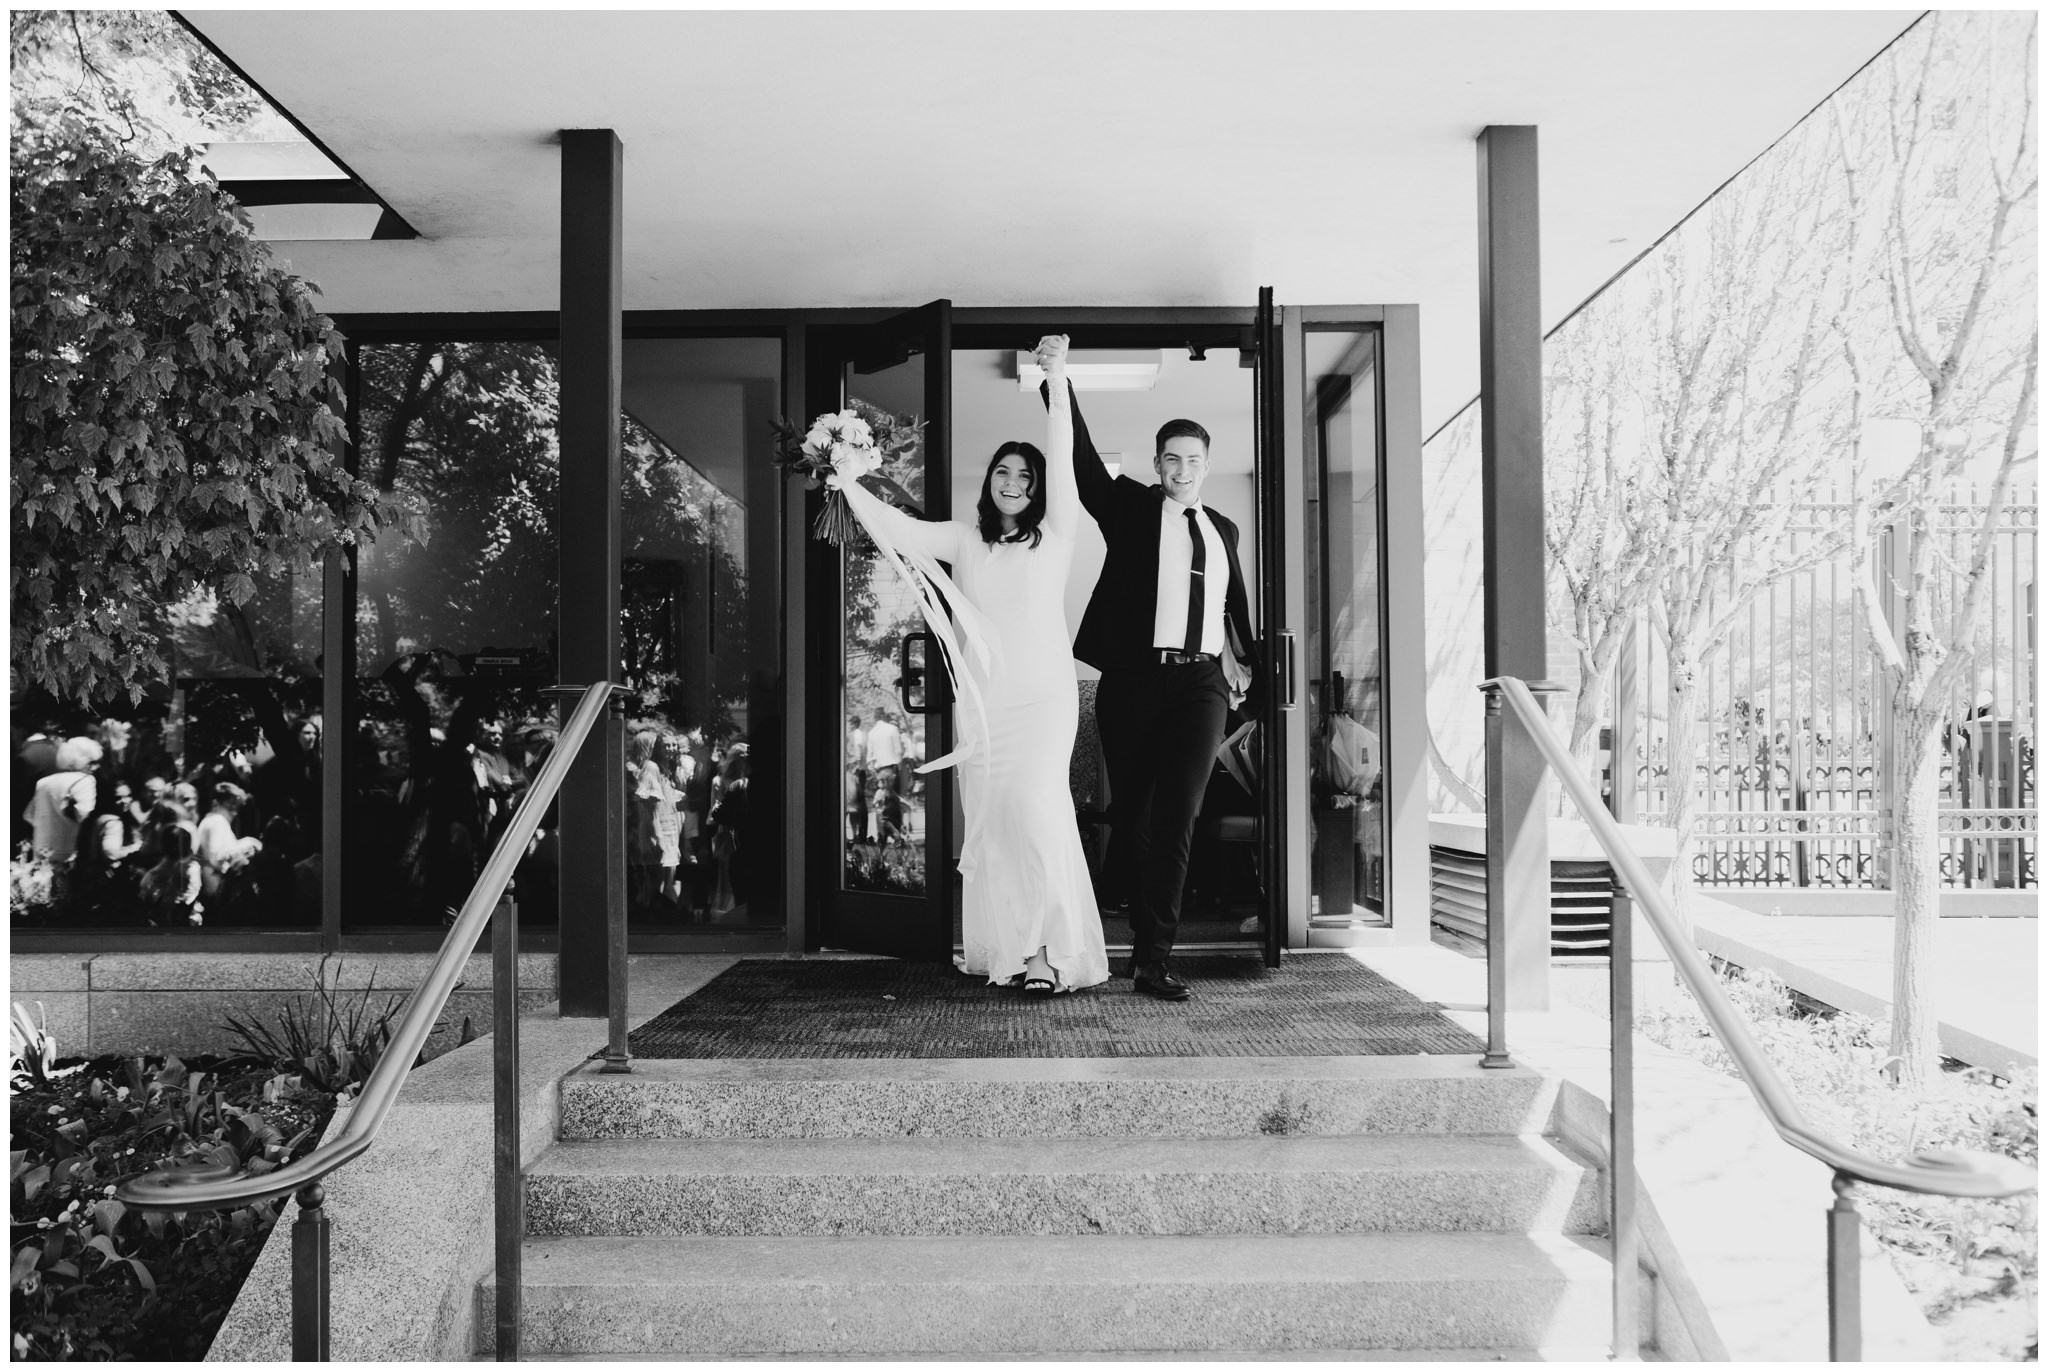 Bride and Groom exiting the Salt Lake City Temple